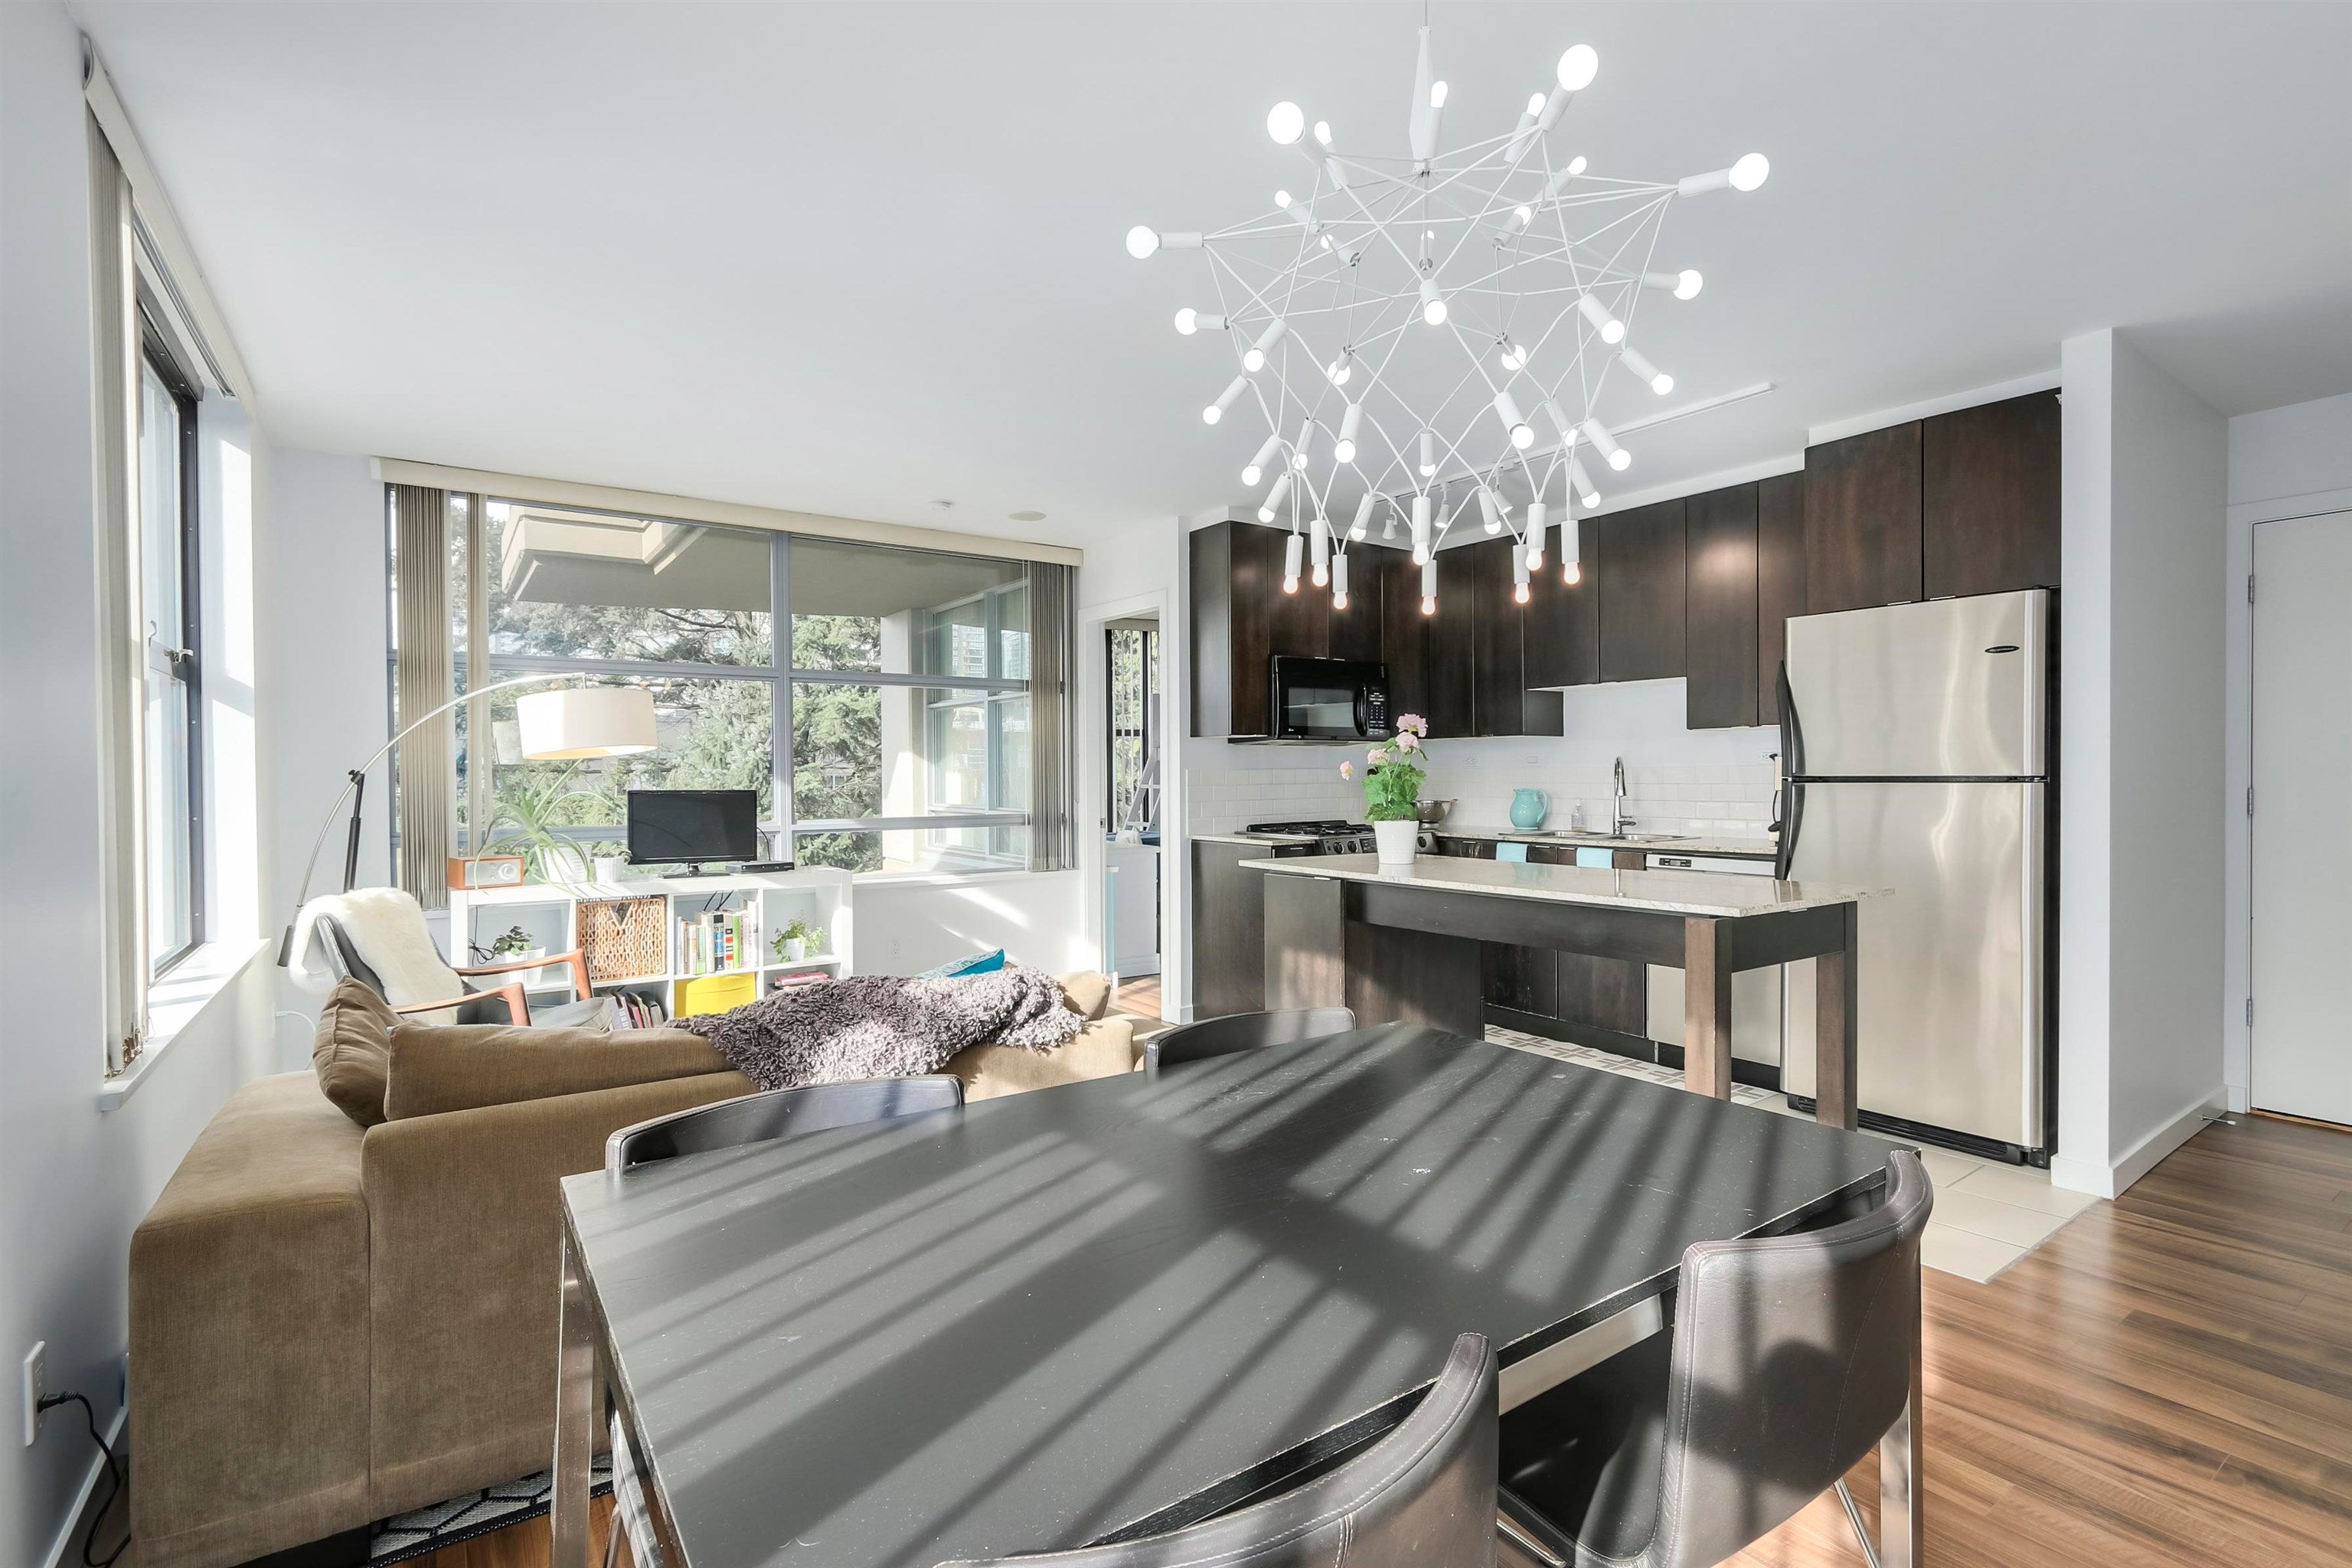 307 989 BEATTY STREET - Yaletown Apartment/Condo for sale, 2 Bedrooms (R2621485) - #1